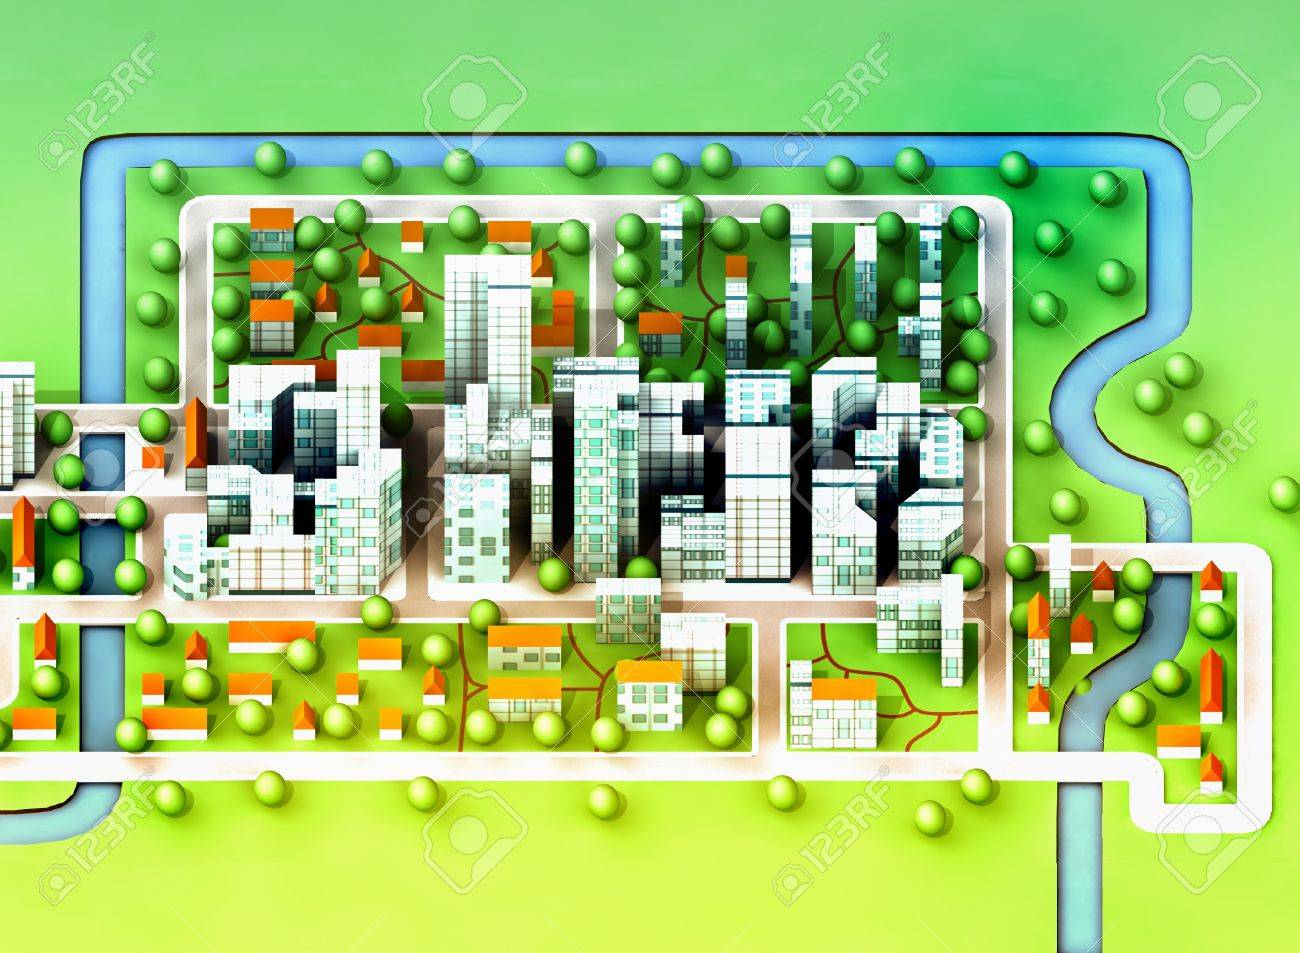 landscape top view on new sustainable city concept development illustration perspective render illustration Stock Illustration - 15709787